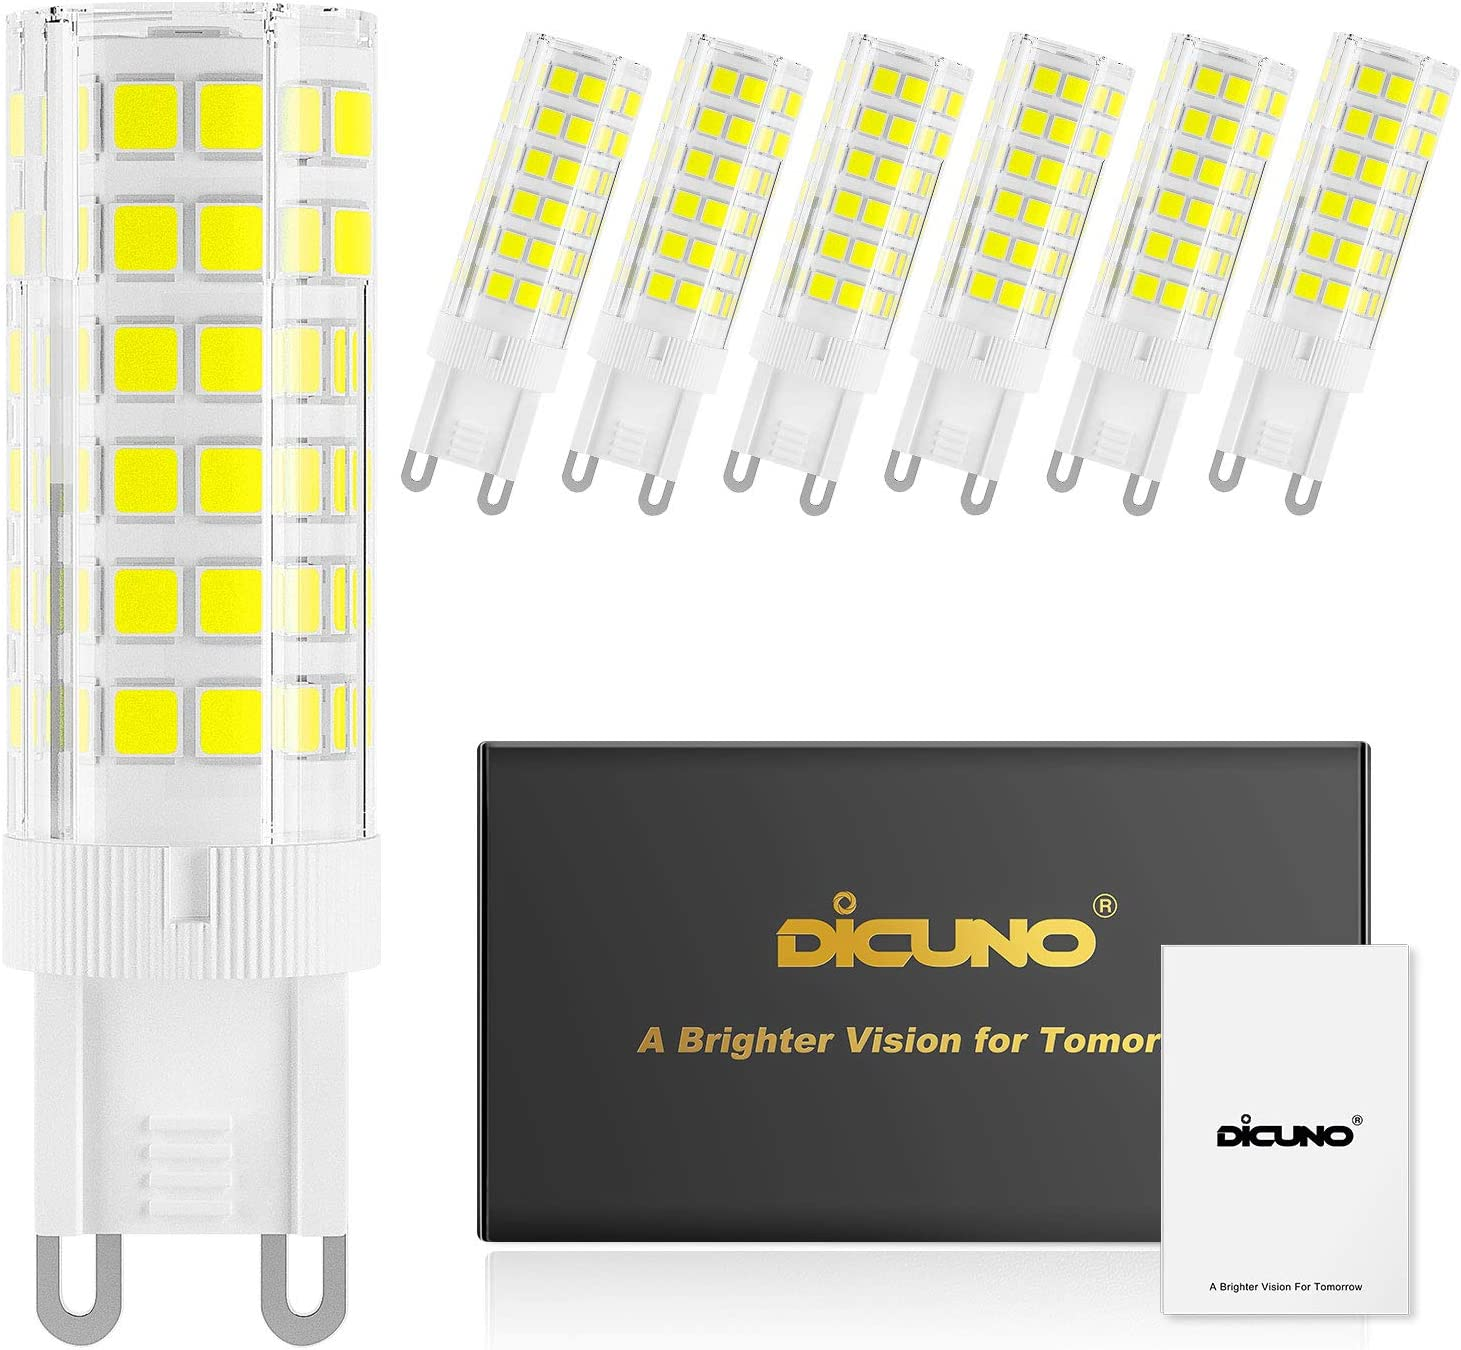 DiCUNO G9 Ceramic Base LED Light Bulbs, 6W (60W Halogen Equivalent), 550LM, Daylight White (6000K), G9 Base, G9 Bulbs Non-Dimmable for Home Lighting, 6-Pack